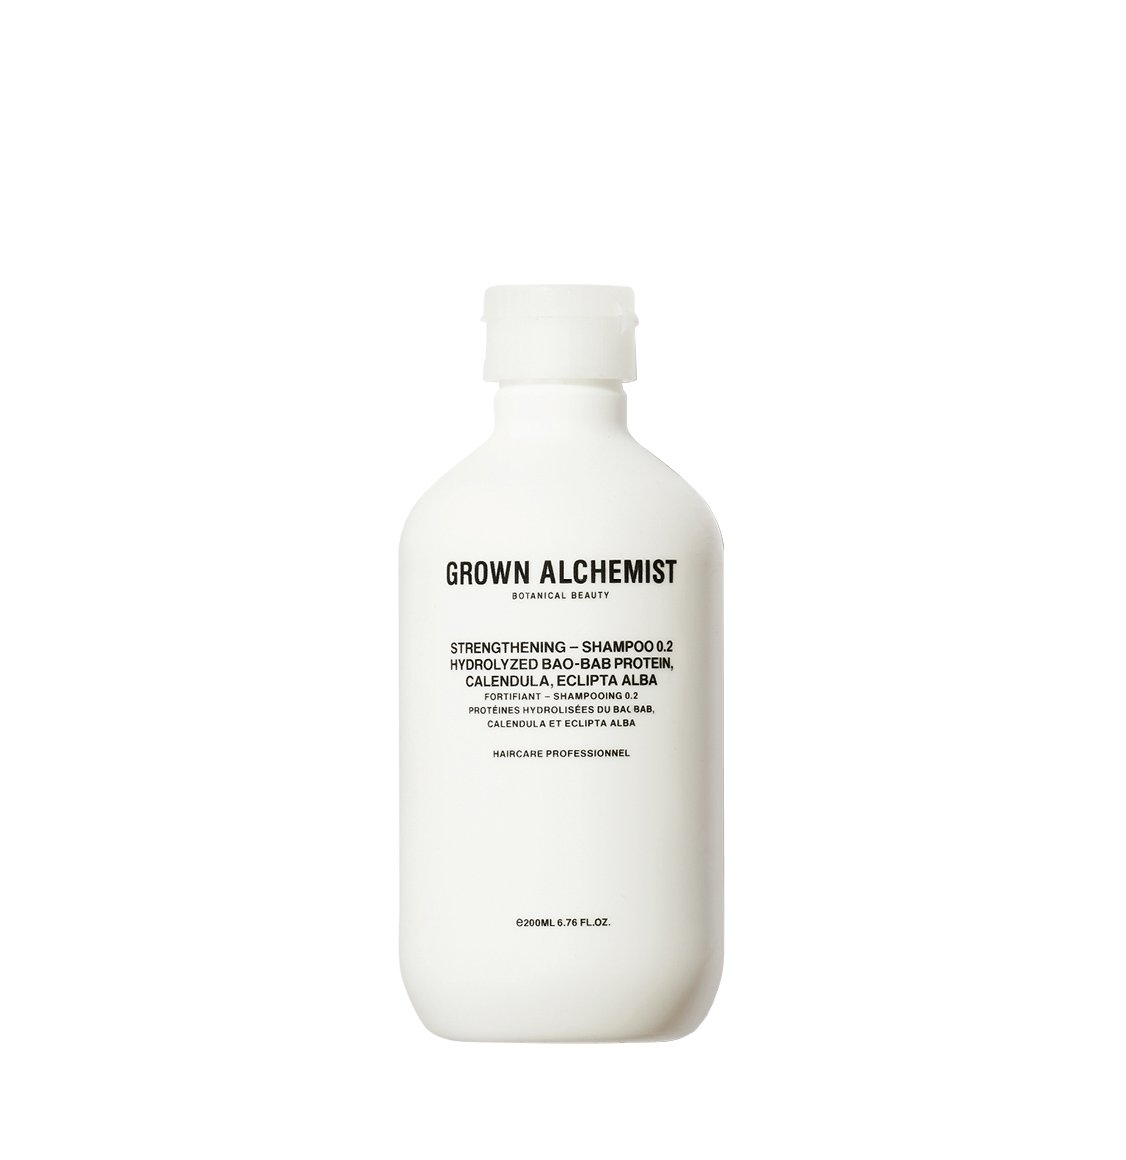 Grown_Alchemist_Strengthening_Shampoo_0.2_Hydrolyzed_Bao-Bab_Protein_Calendula_Eclipta_Alba_The_Project_Garments_A